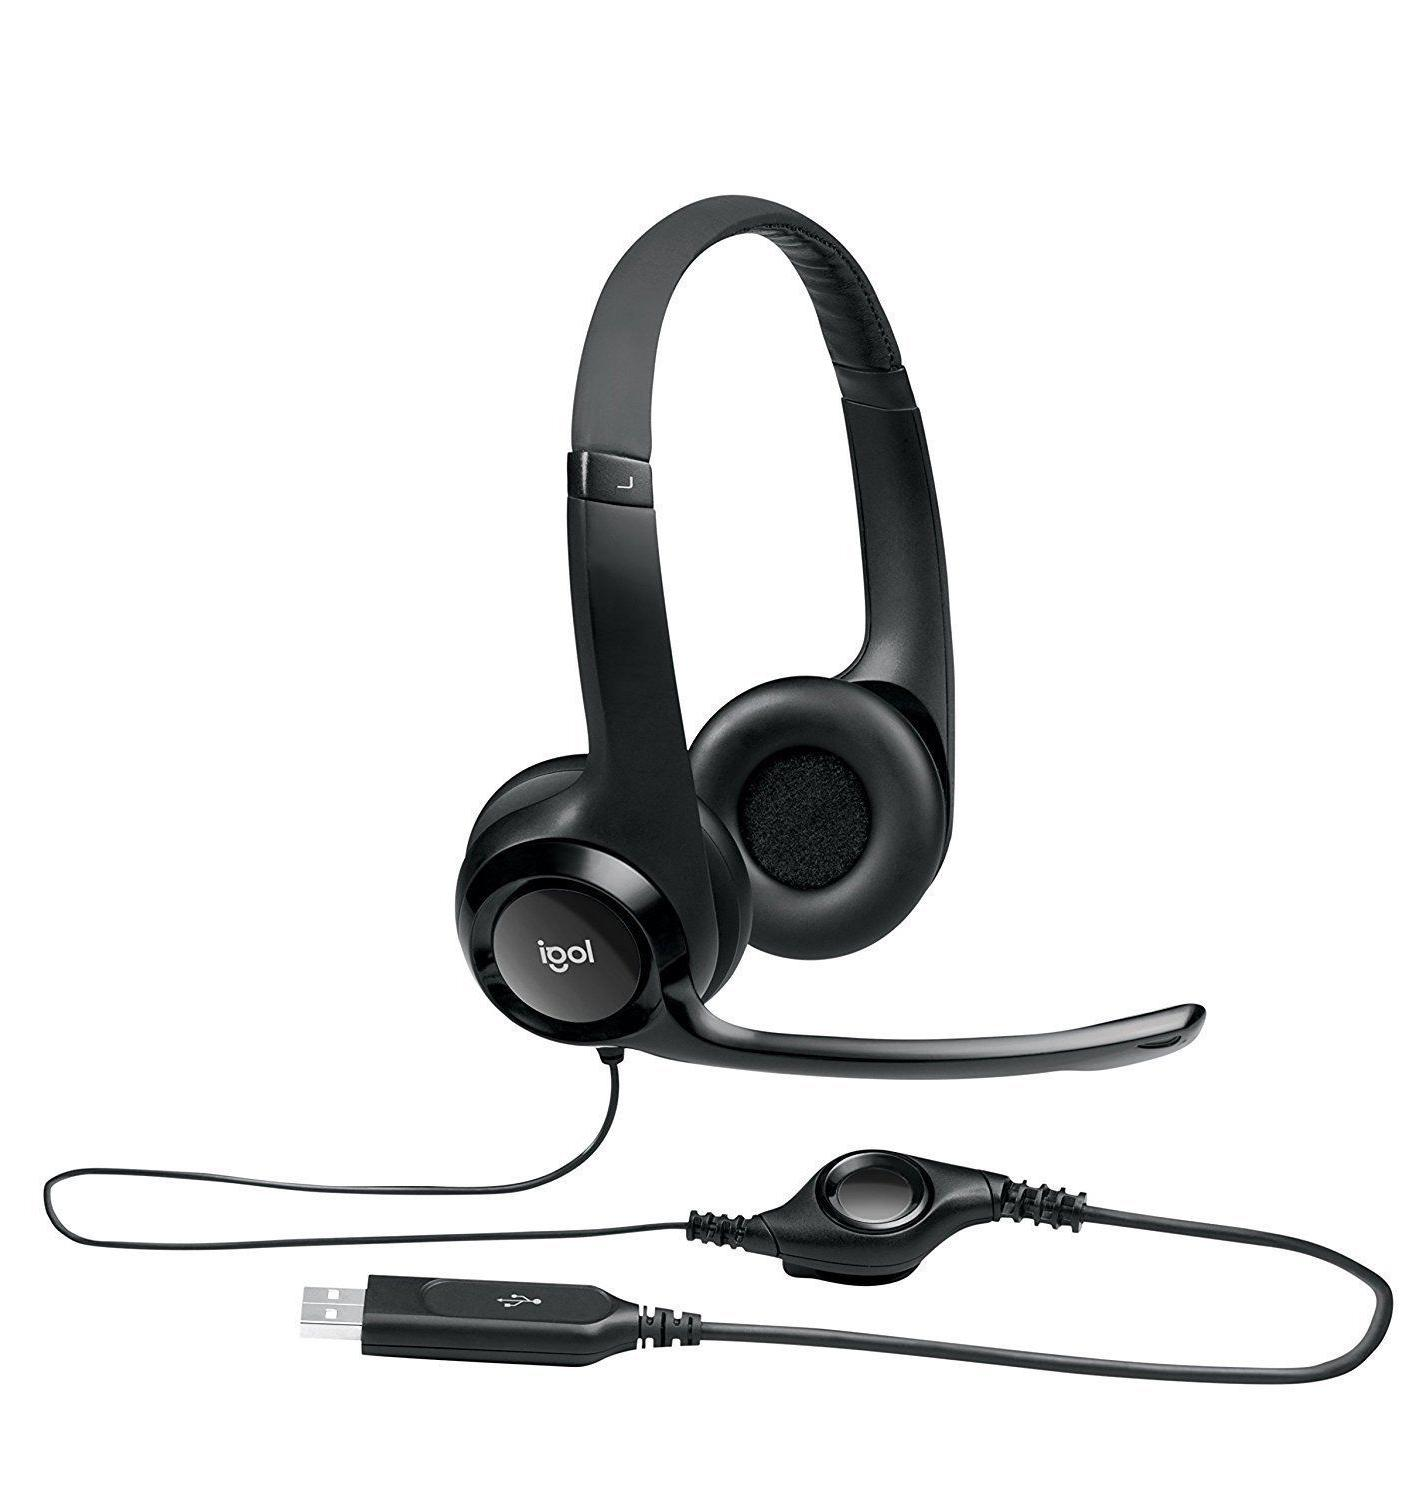 h390 comfort usb wired pc headset internet